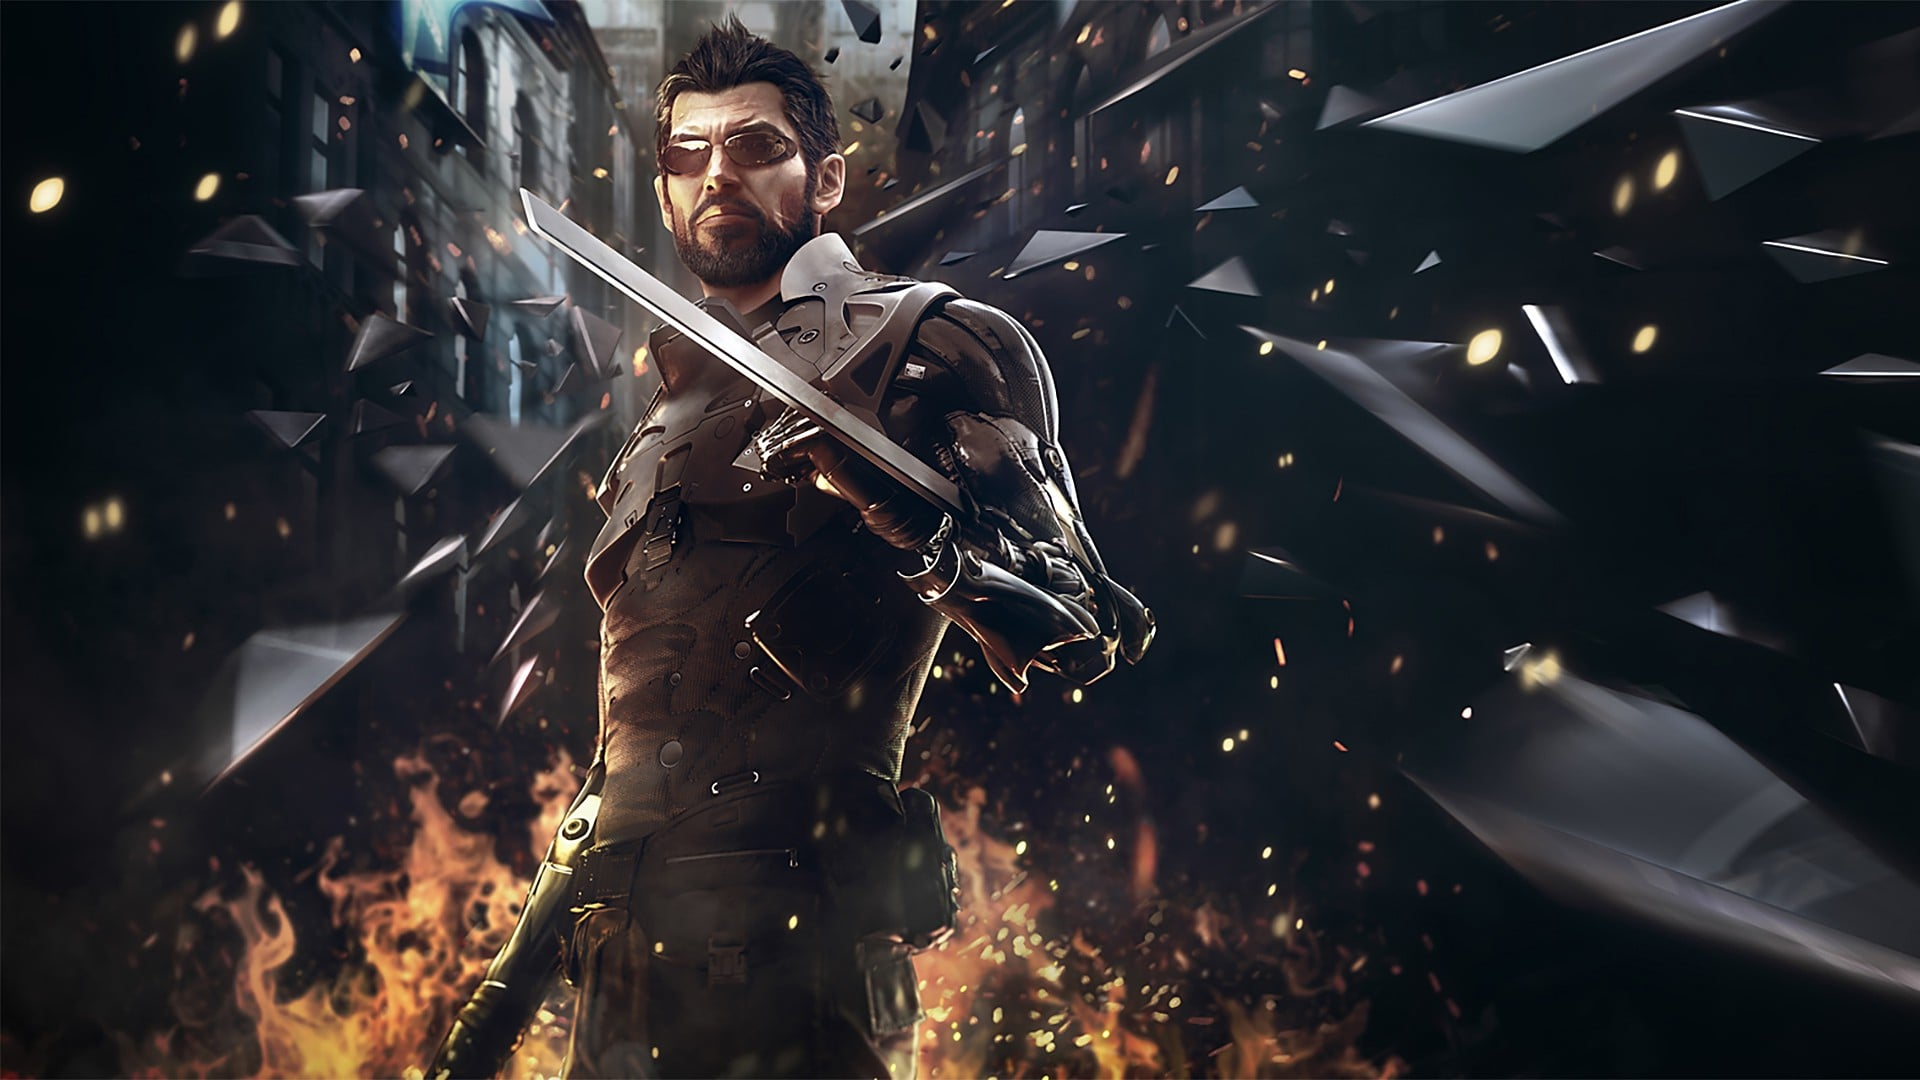 Deus Ex Mankind Divided 4k Wallpaper Hd Image 5 On Wallpapersqq